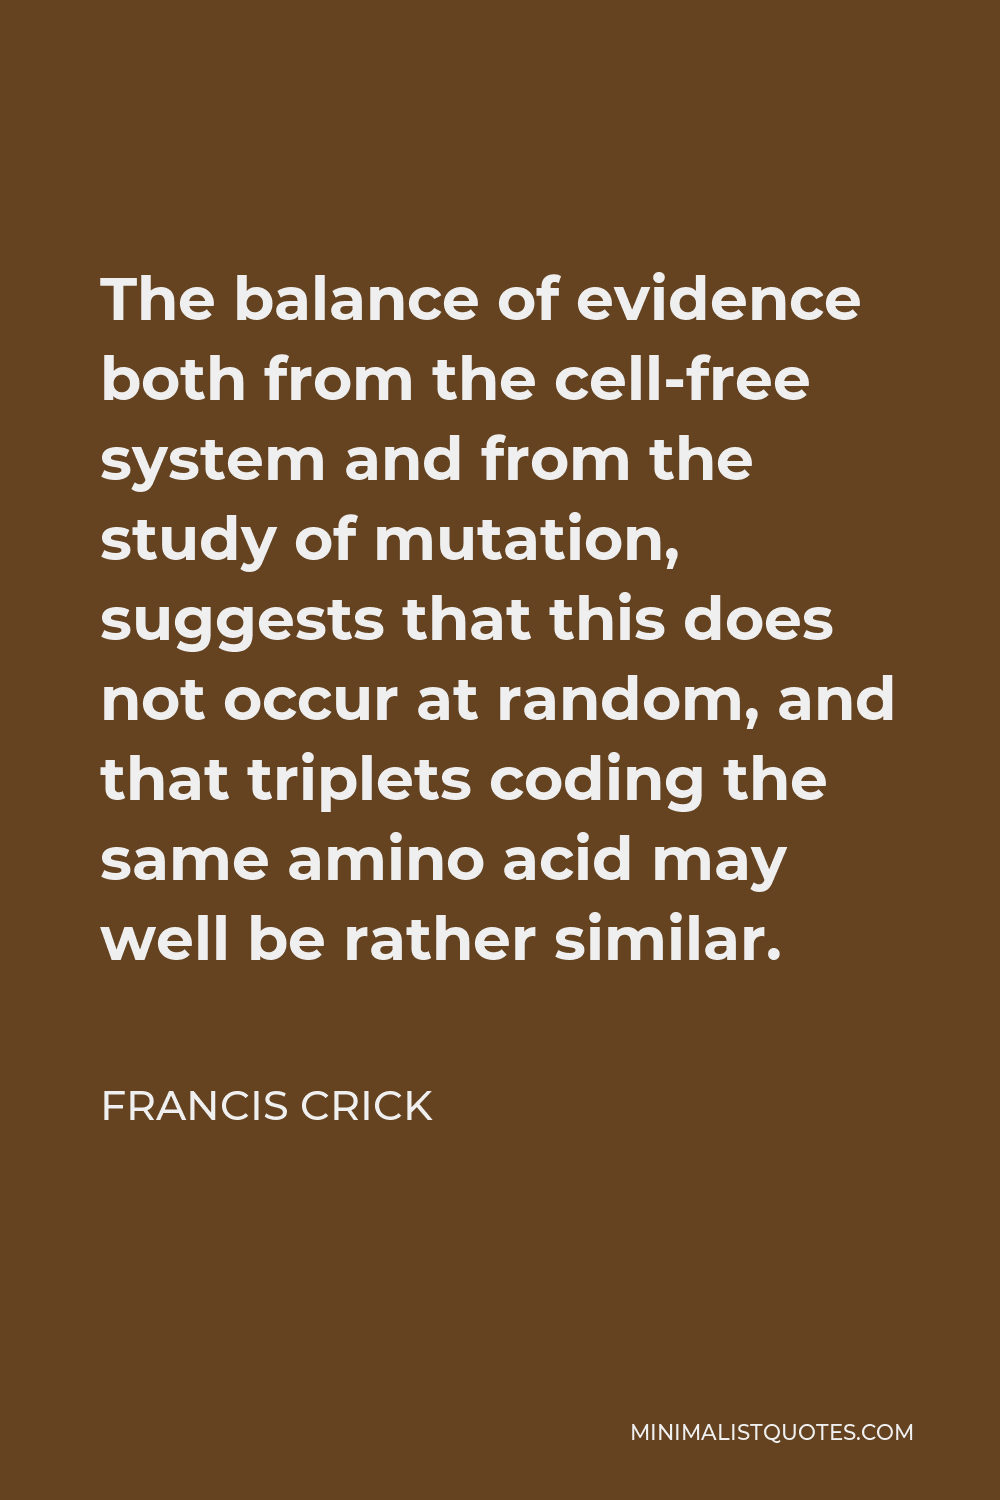 Francis Crick Quote - The balance of evidence both from the cell-free system and from the study of mutation, suggests that this does not occur at random, and that triplets coding the same amino acid may well be rather similar.